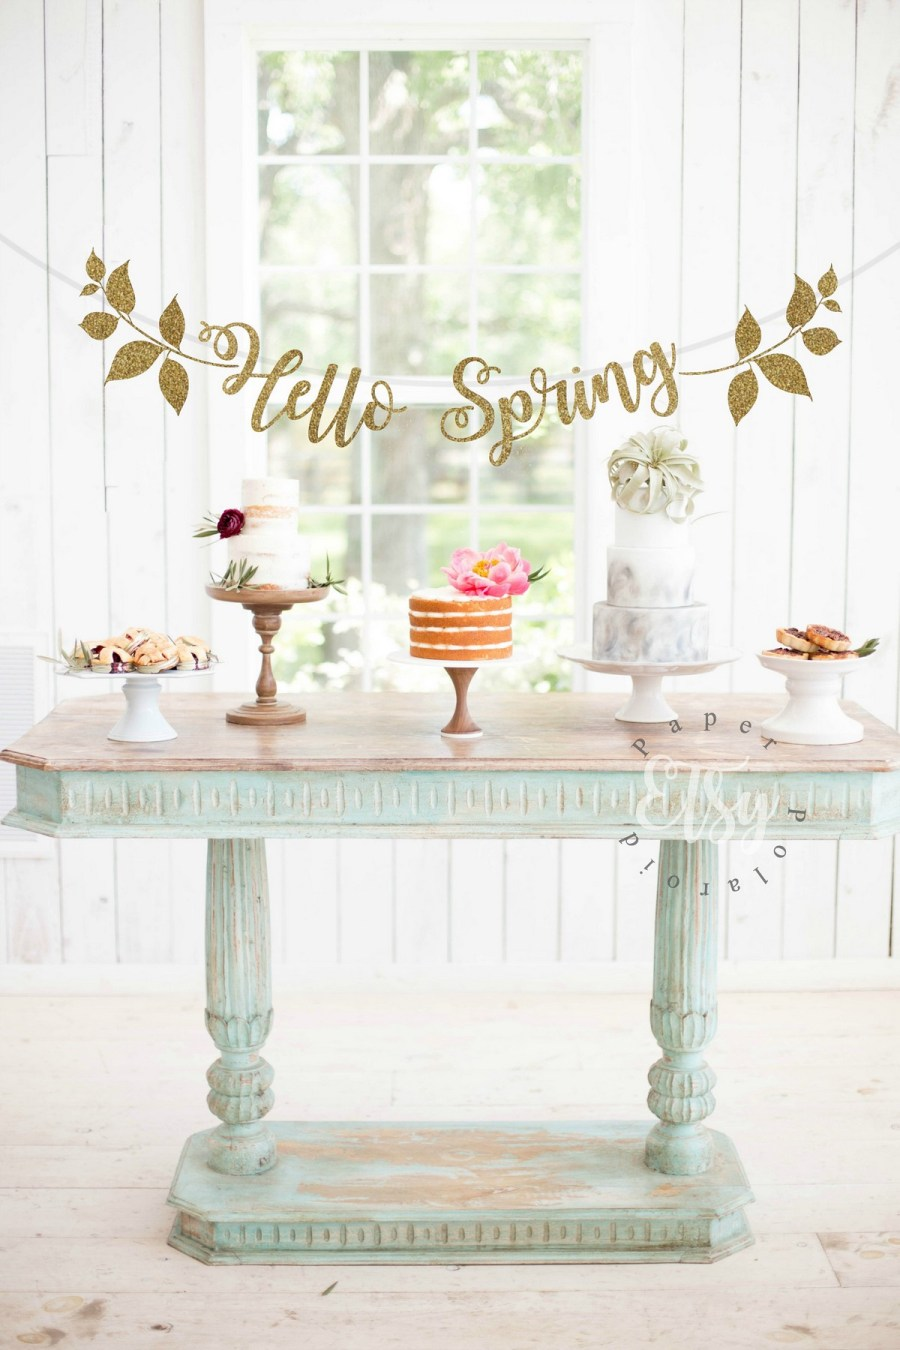 Whether hung over a door, draped over a mantel, or showcased at a backyard BBQ, spring garlands need to make an appearance this season.